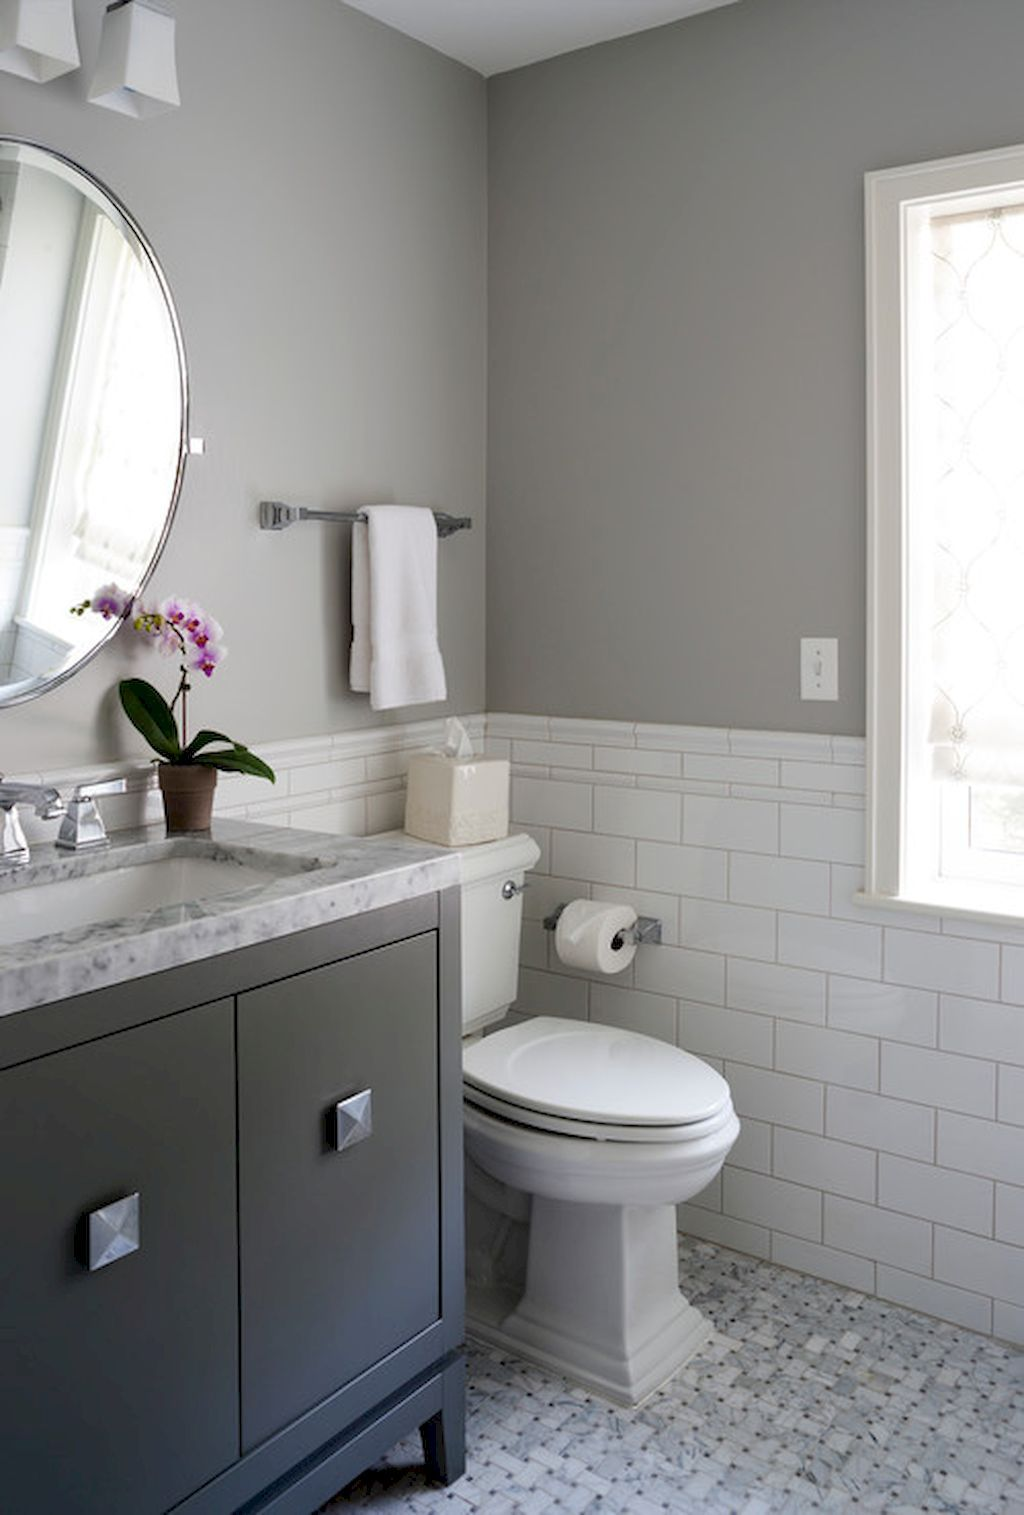 60 Small Master Bathroom Tile Makeover Design Ideas | Bathroom ...